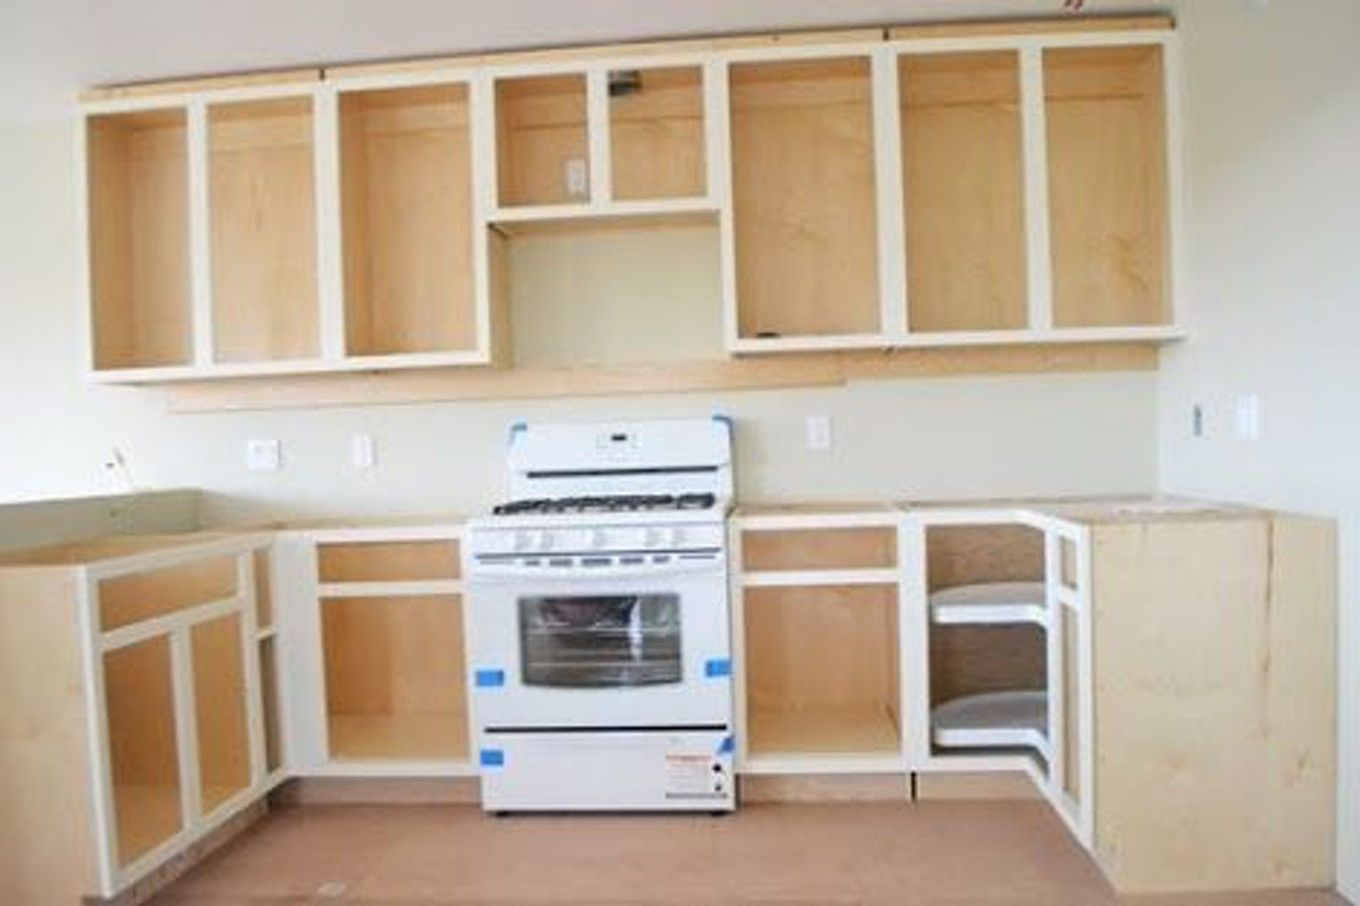 55 Build My Own Kitchen Cabinets Remodeling Ideas For Kitchens Check More At Http Www Plan Building Cabinet Plans Plywood